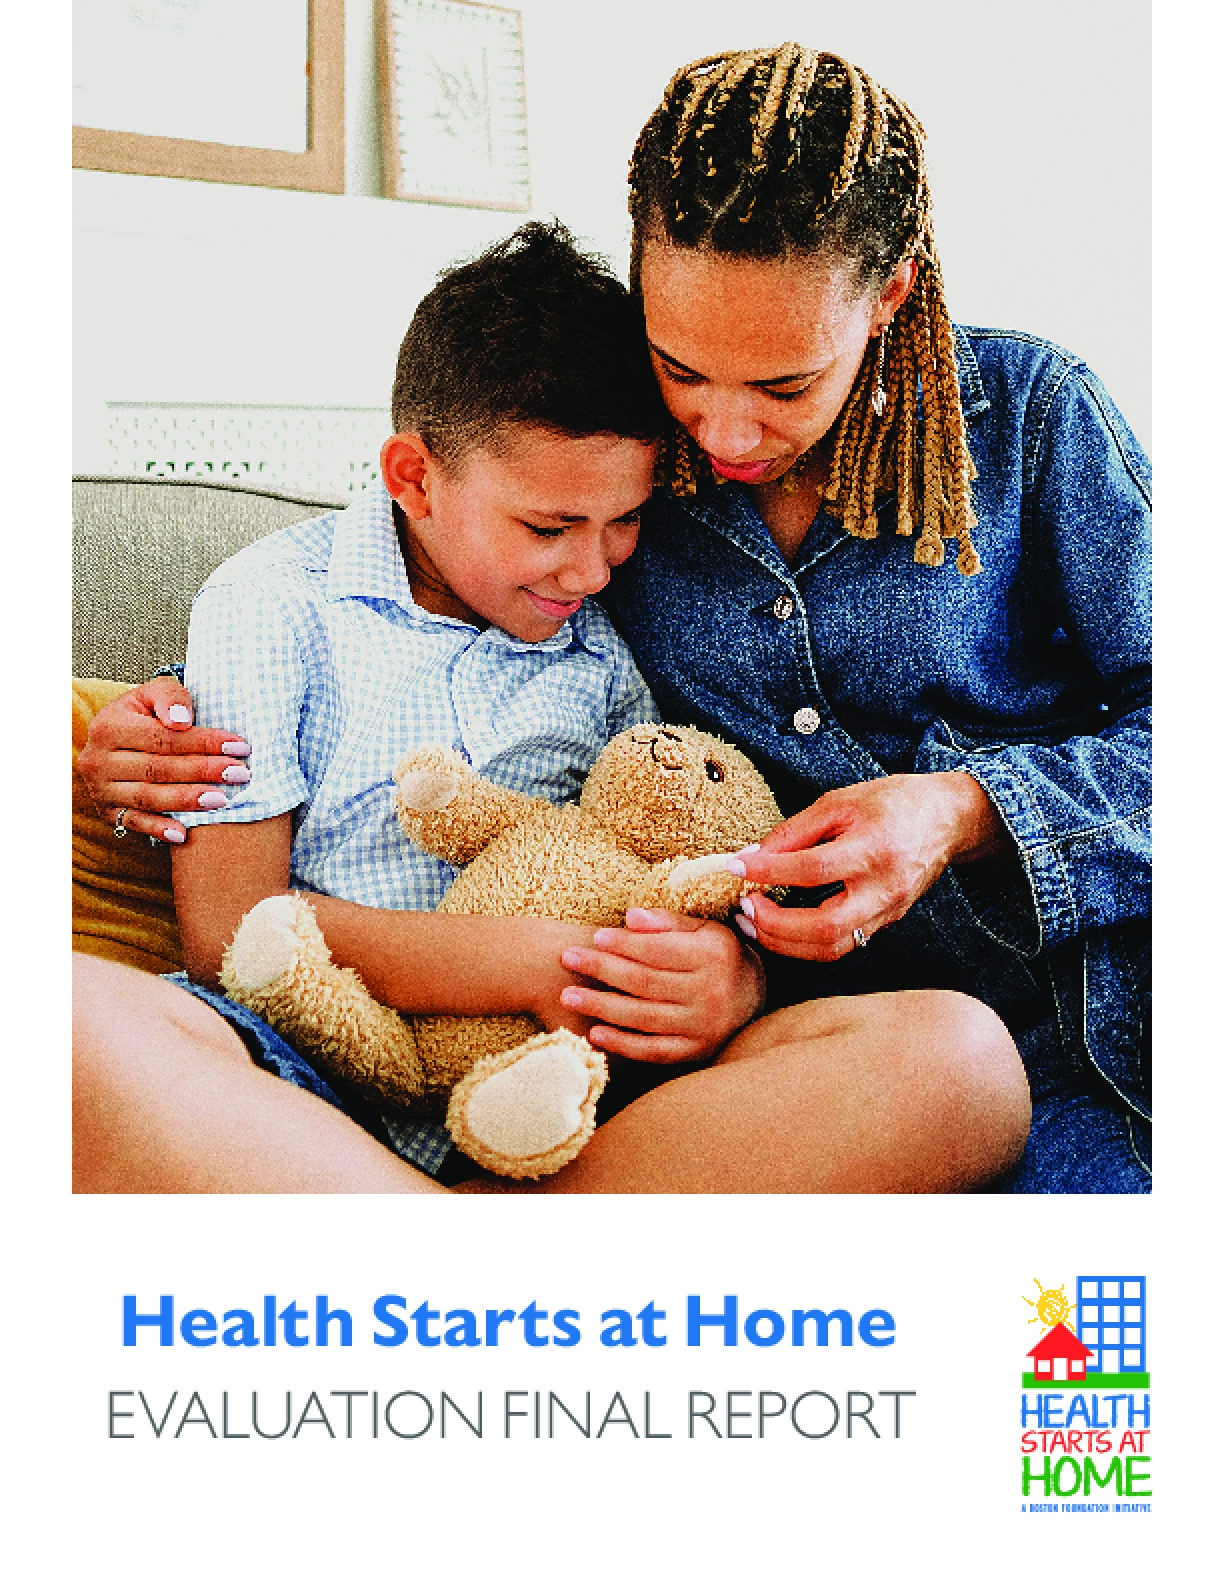 Health Starts at Home: Final Evaluation Report